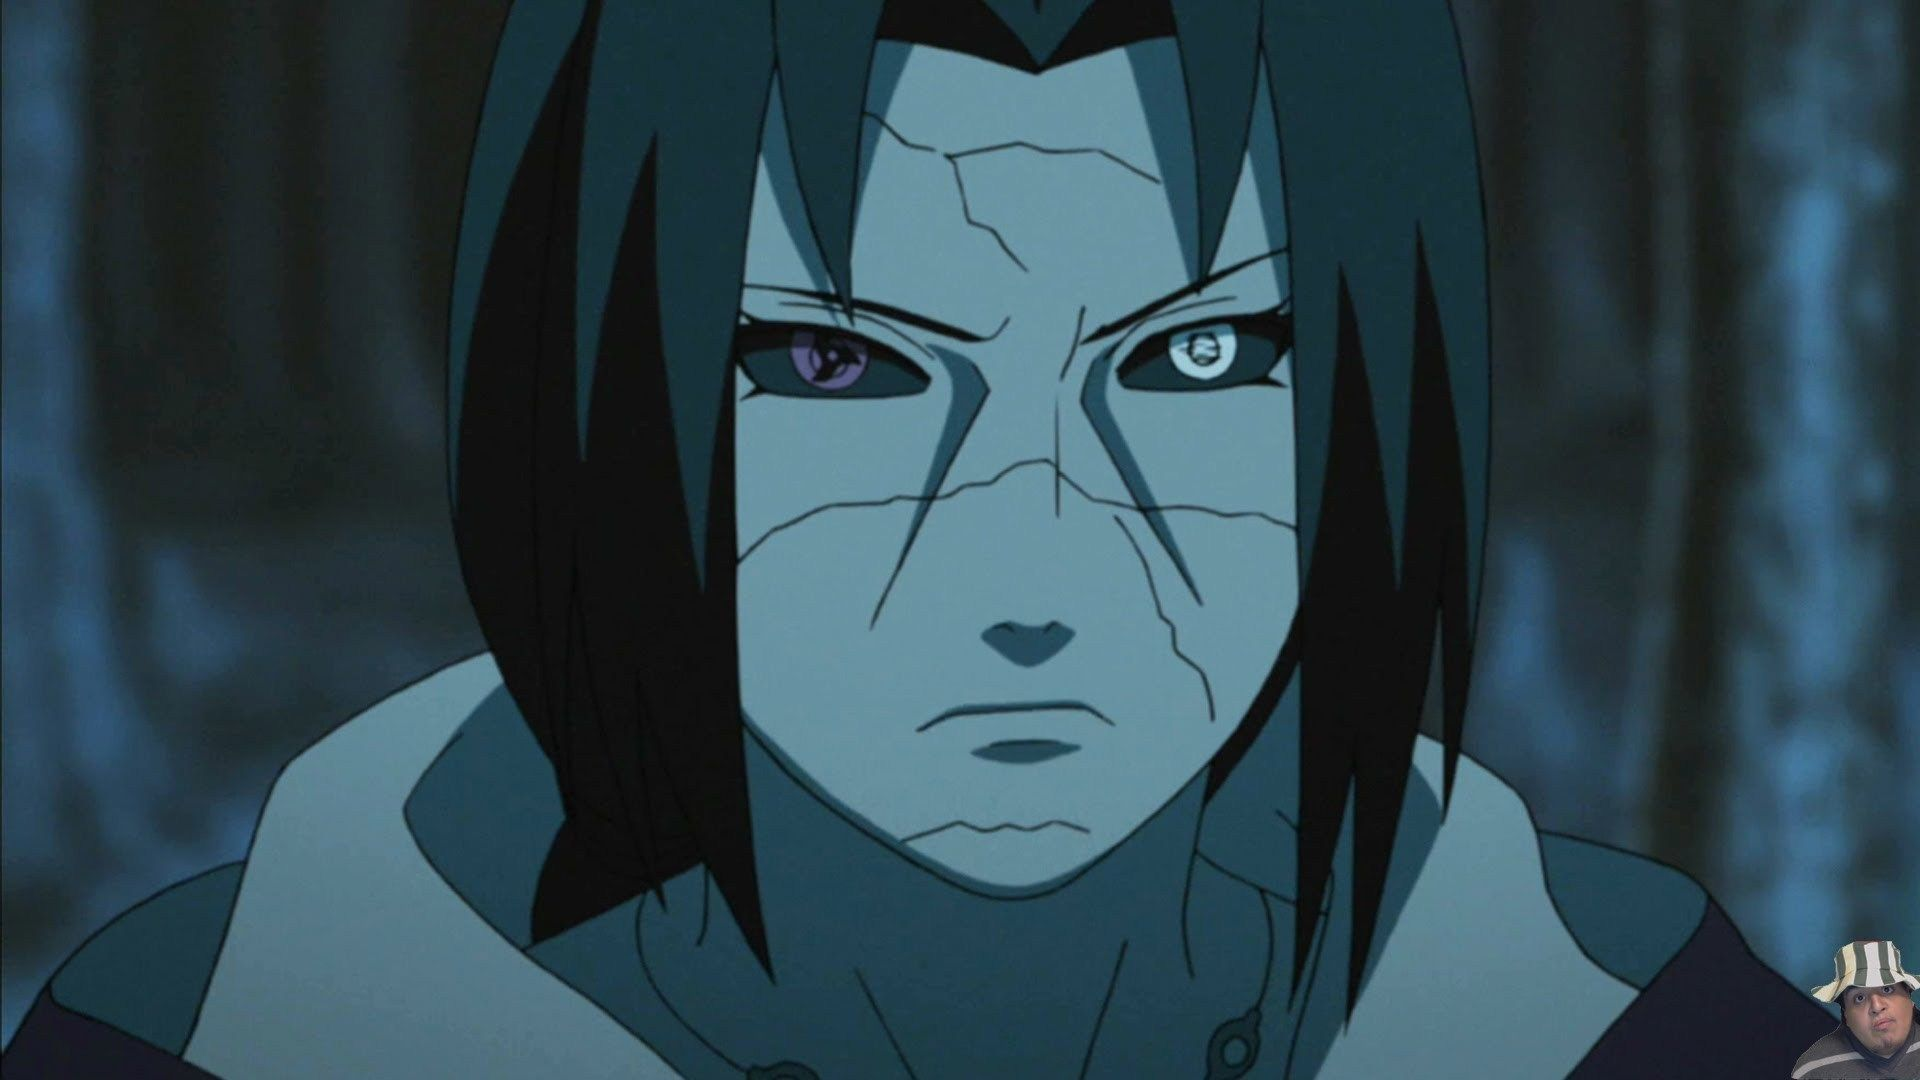 Reanimated Itachi Wallpapers Top Free Reanimated Itachi Backgrounds Wallpaperaccess